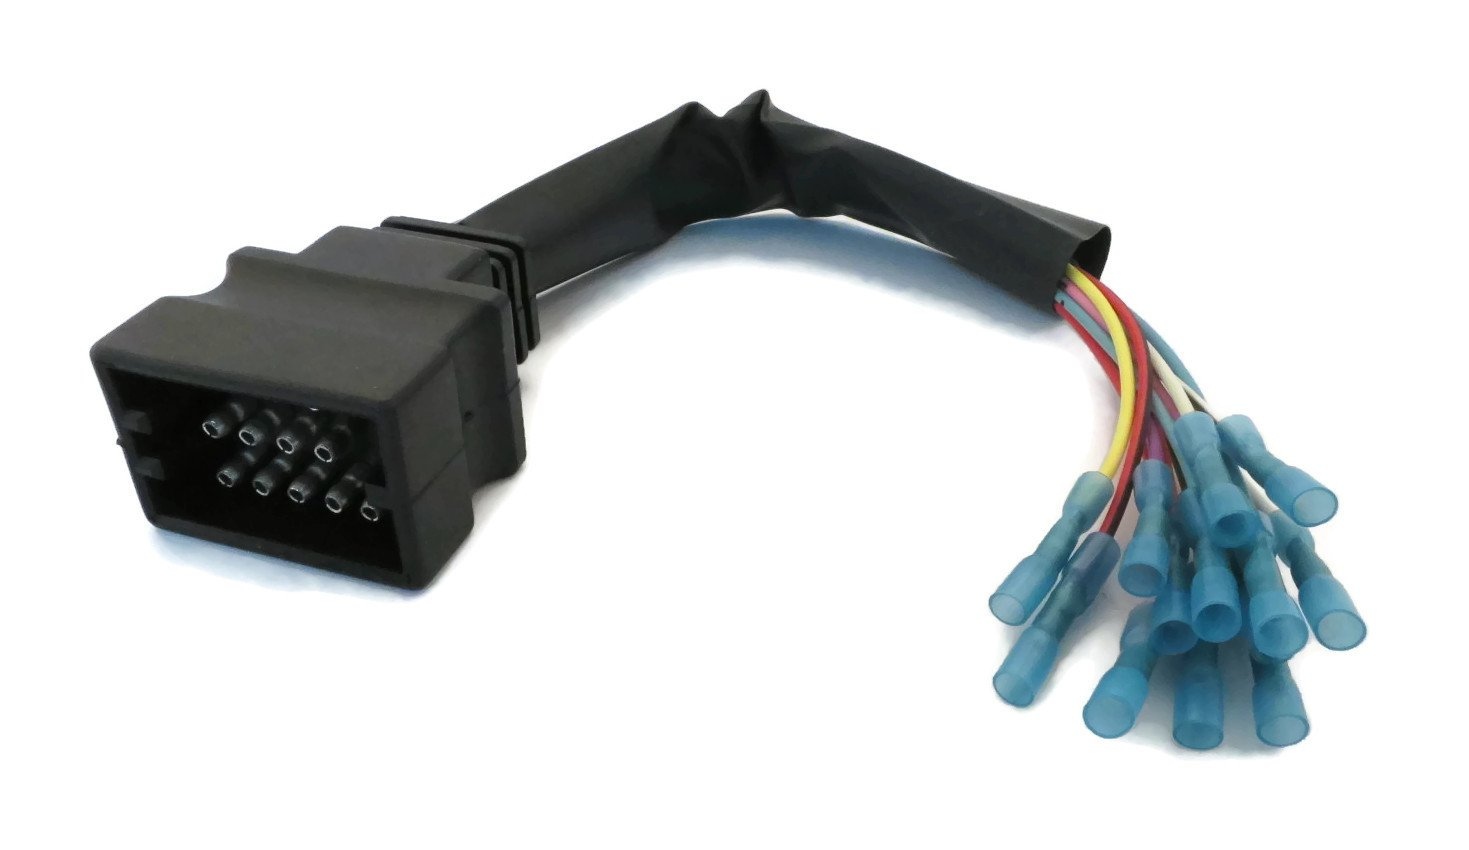 61IwZON%2BxQL._SL1469_ amazon com snow plow wiring harness repair kit (plow side how to repair wiring harness at edmiracle.co